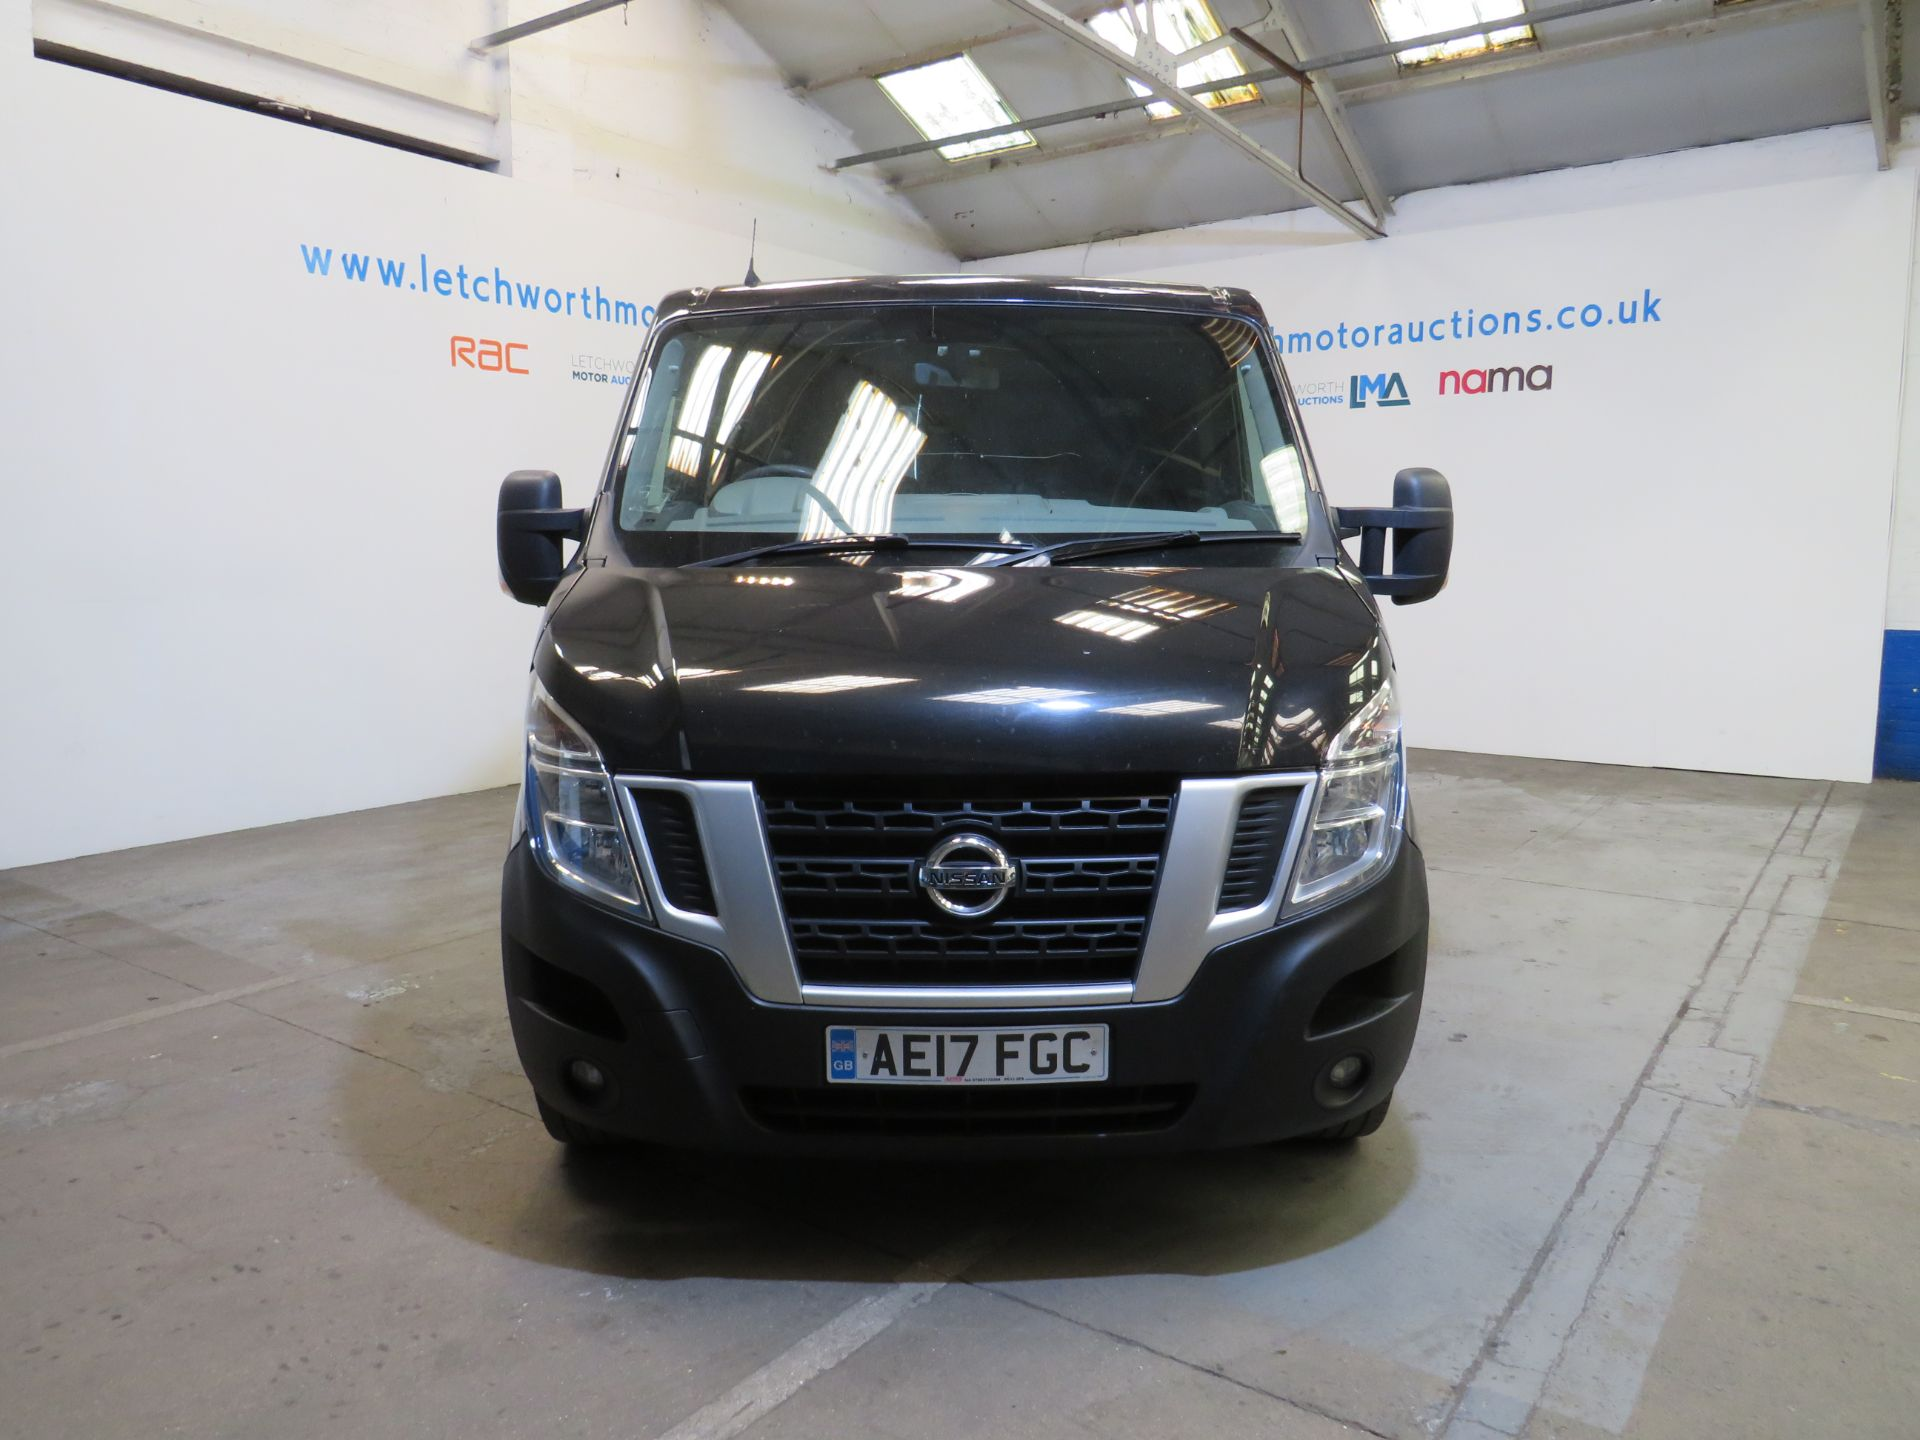 Lot 4 - 2017 Nissan NV400 SE DCI - 2299cc *PLUS VAT*